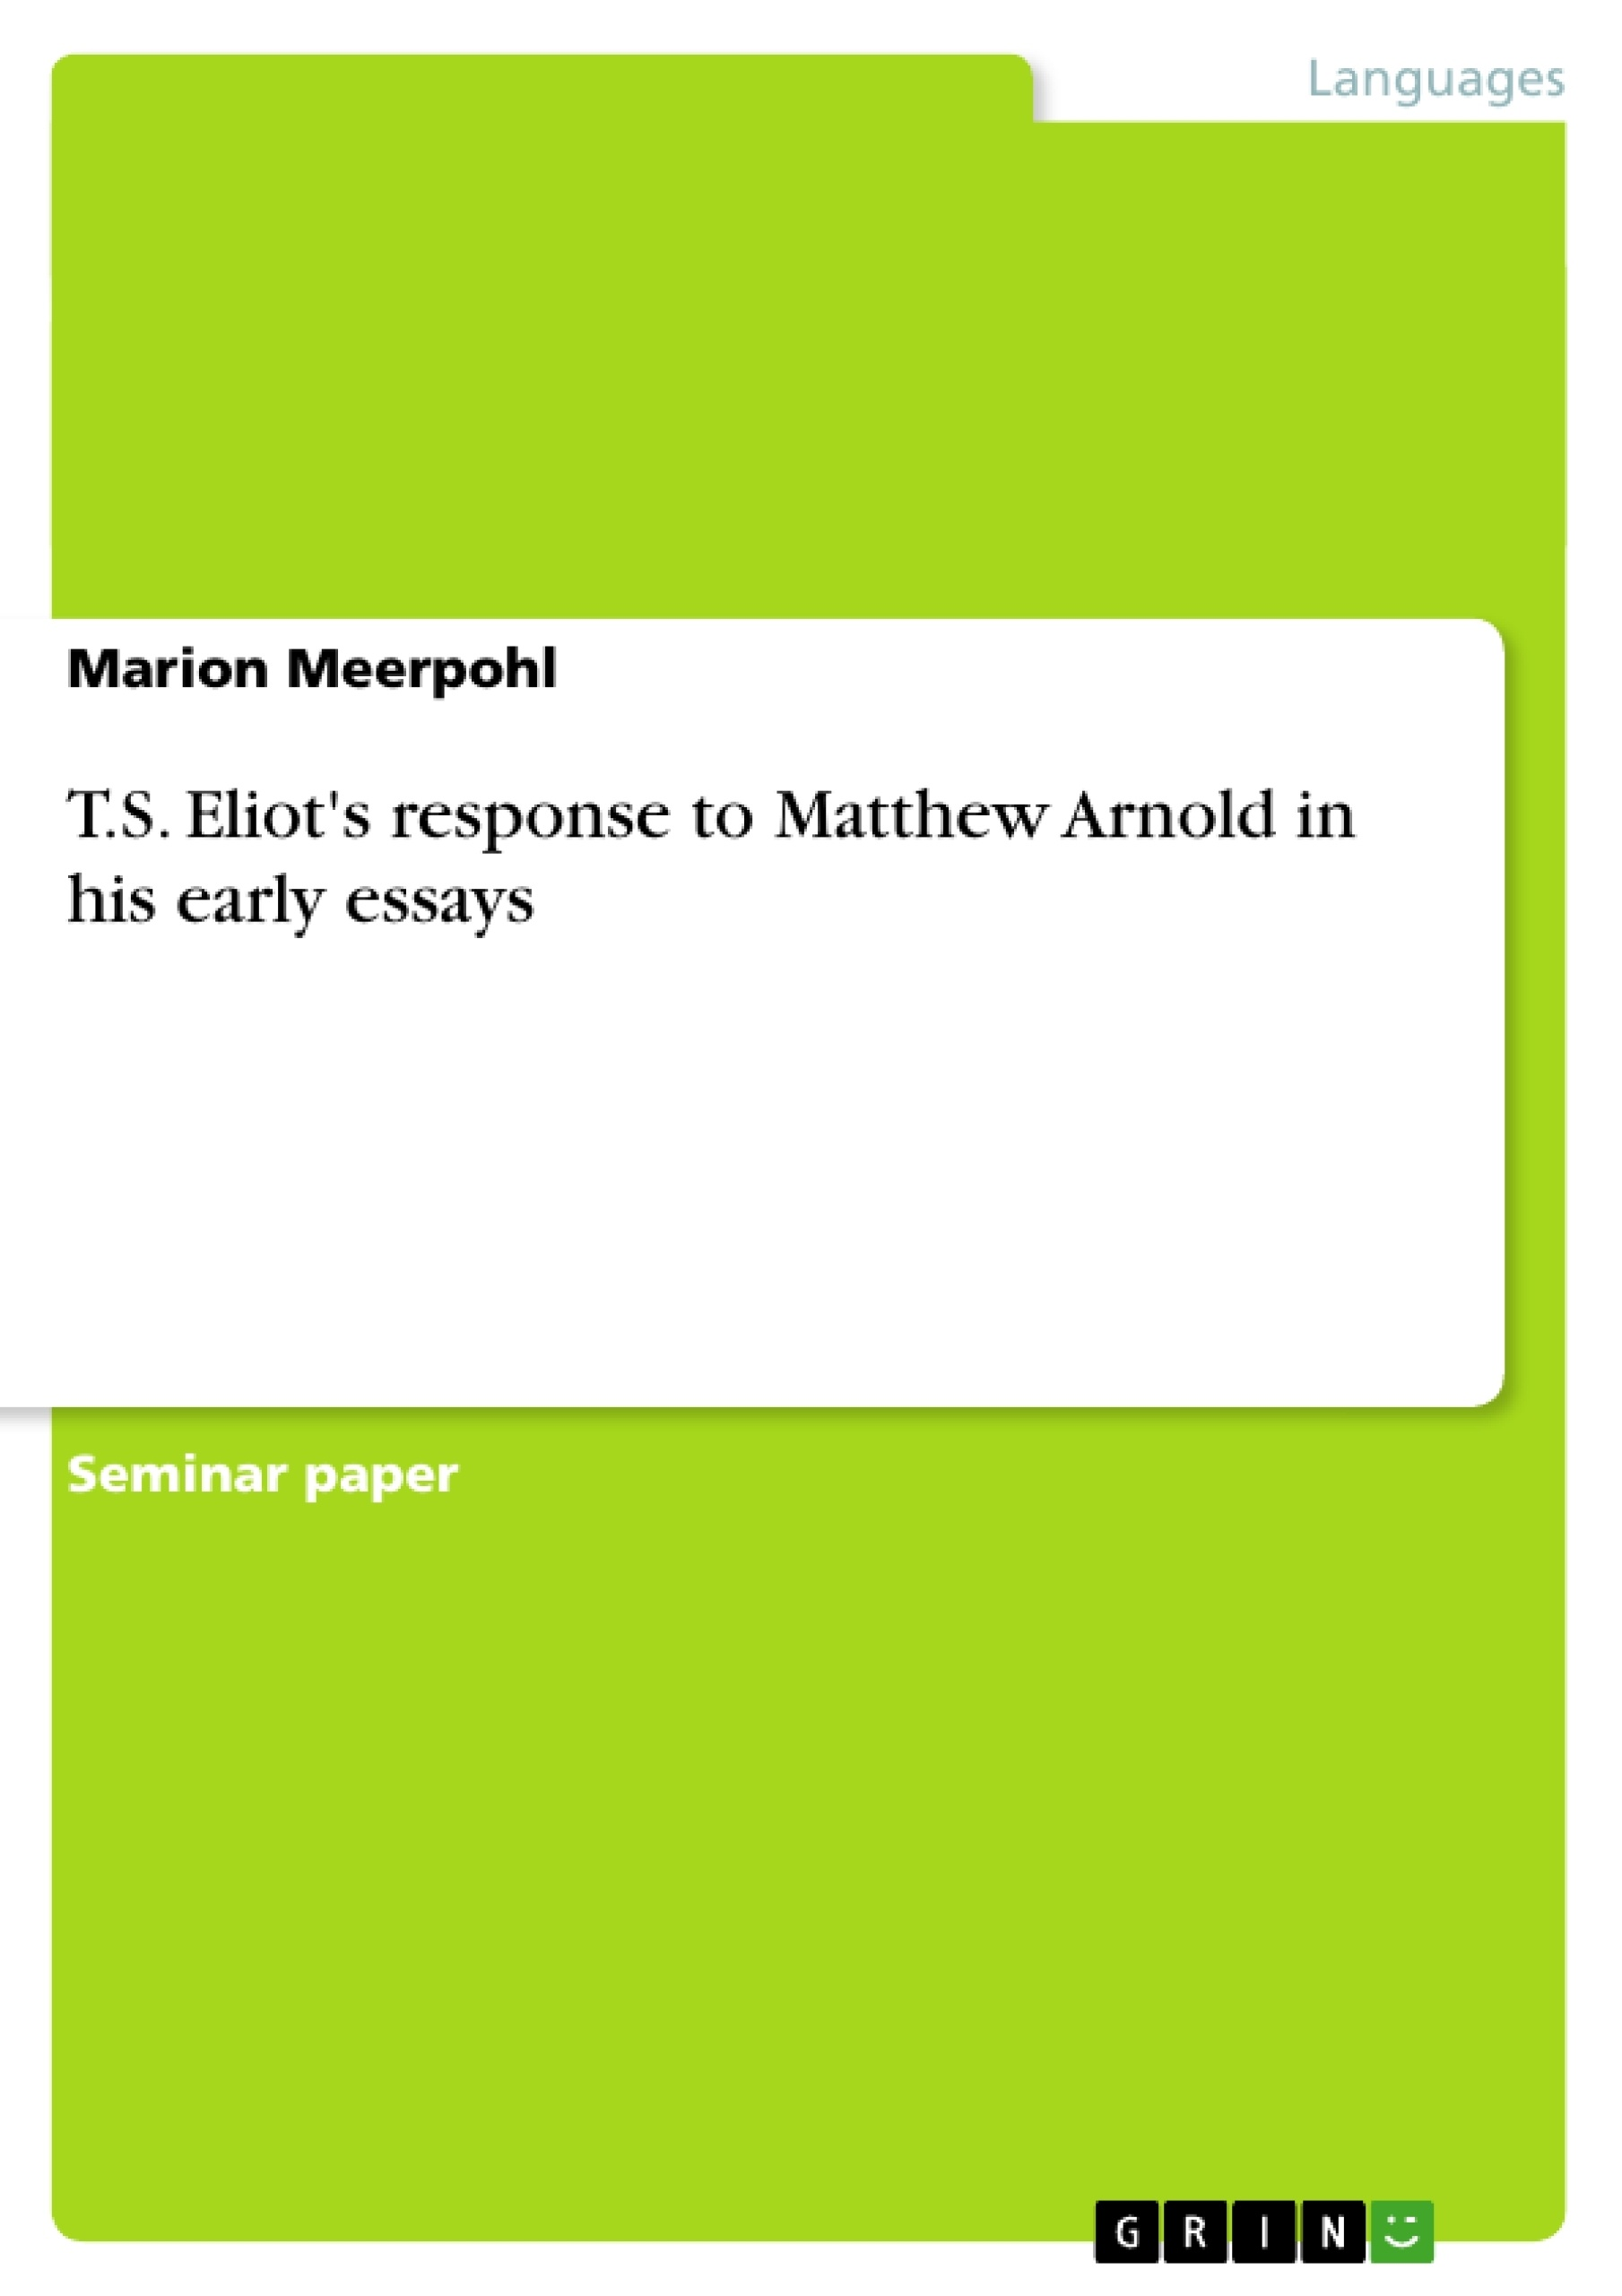 Title: T.S. Eliot's response to Matthew Arnold in his early essays